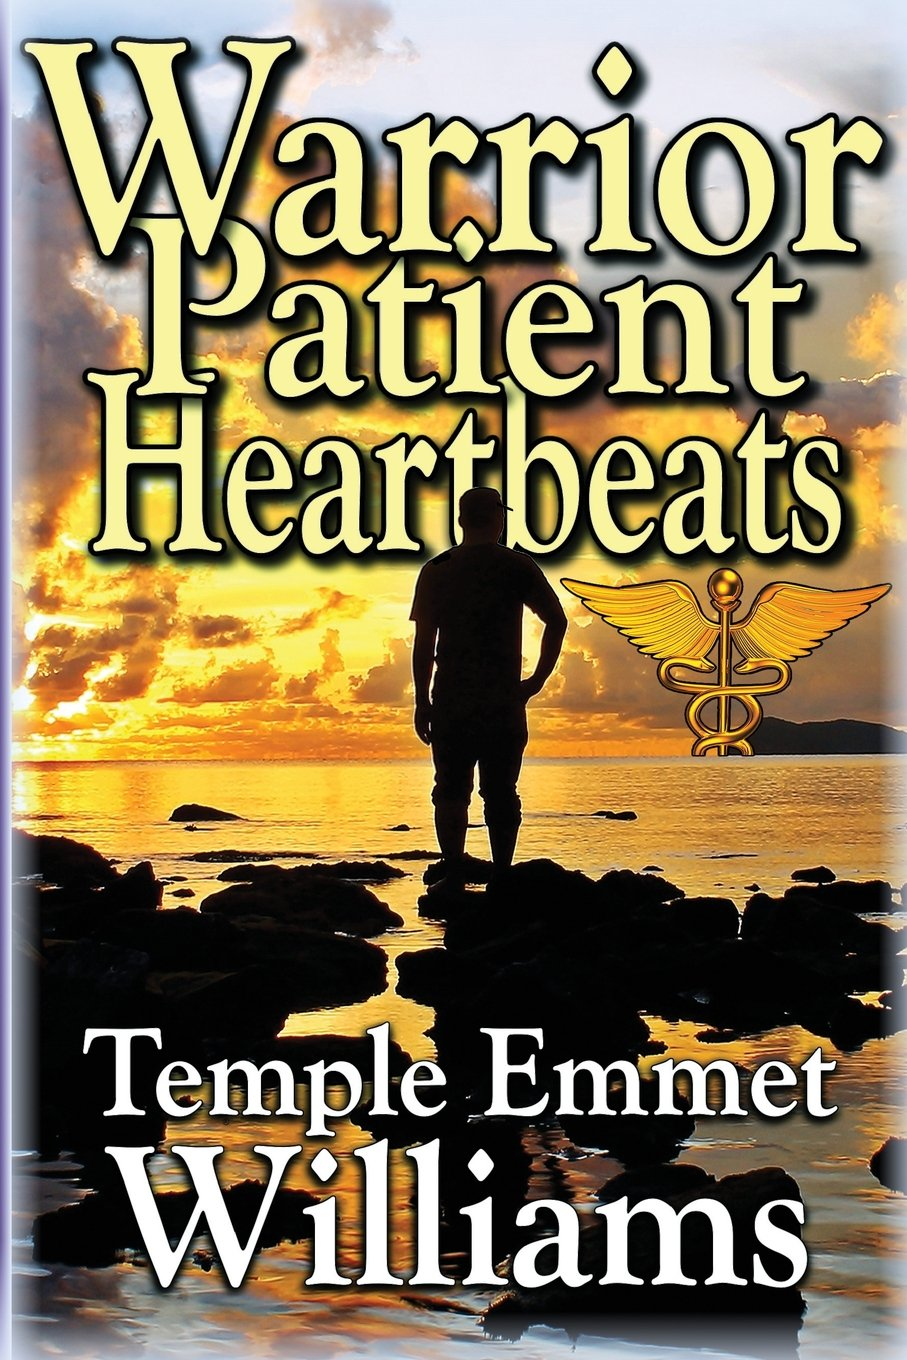 Download Warrior Patient Heartbeats: How to Beat Deadly Diseases With Laughter, Good Doctors, Love, and Guts. PDF